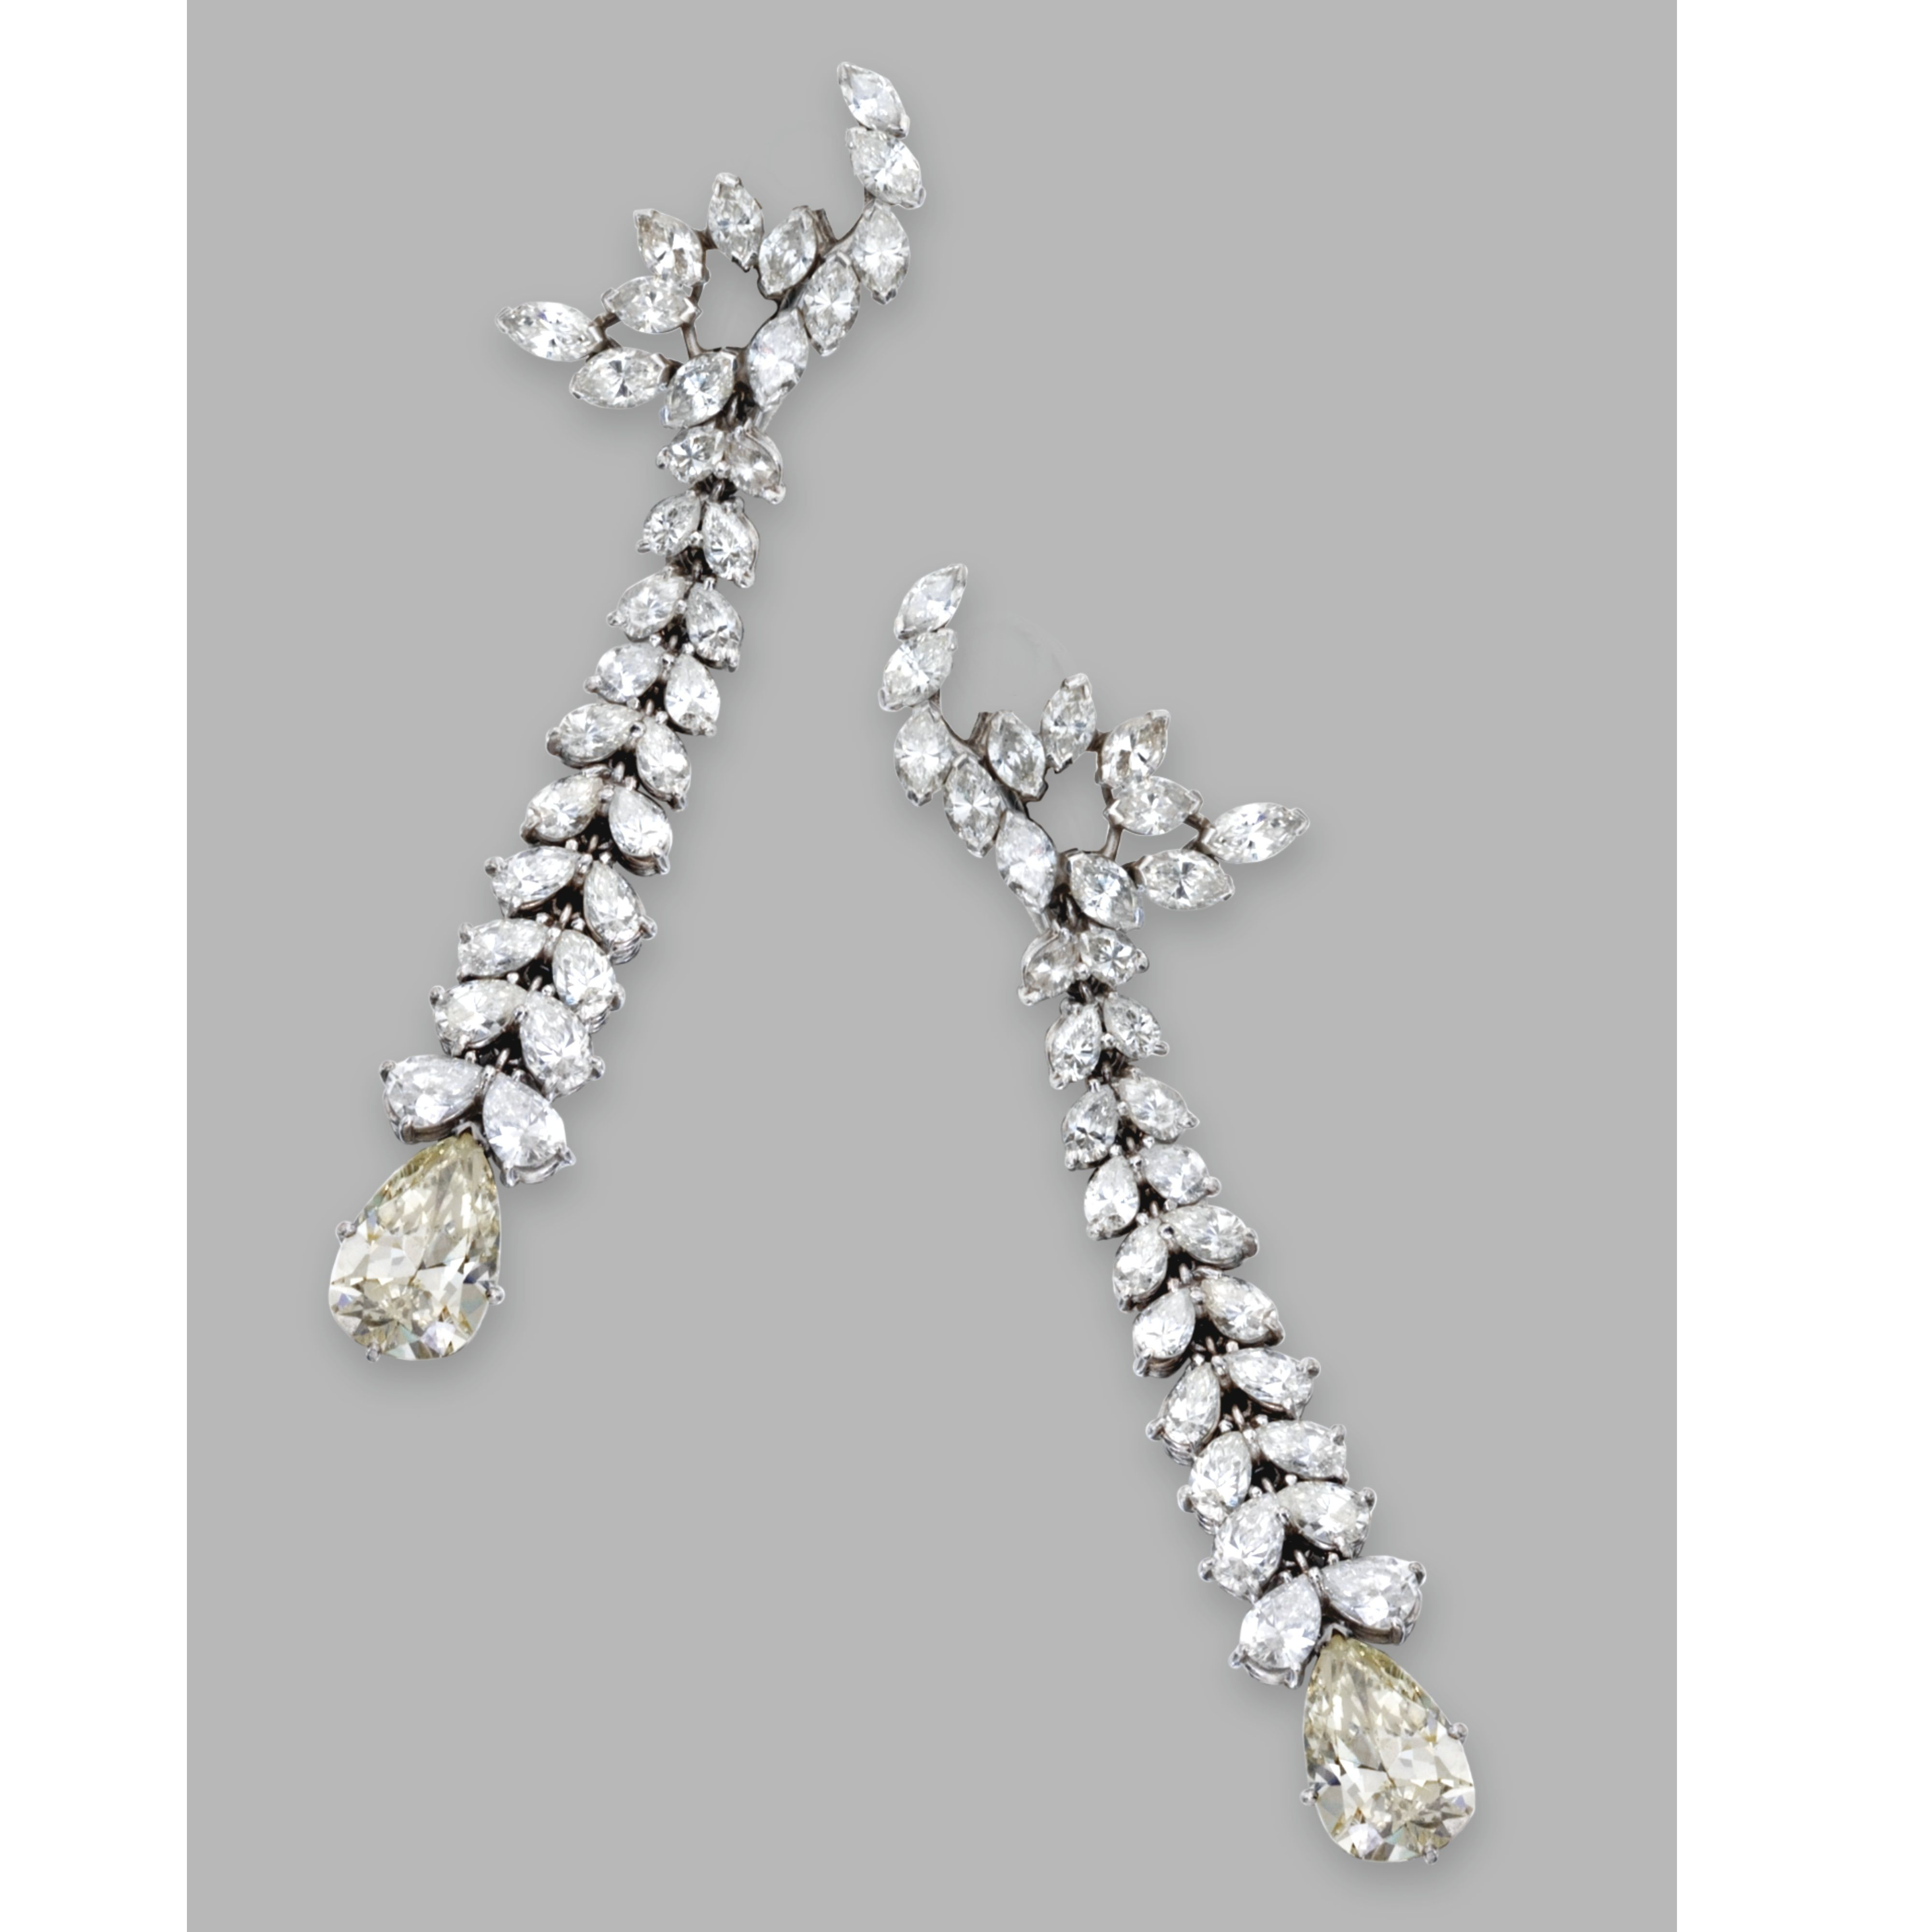 Pair of platinum and diamond pendantearclips the highly articulated